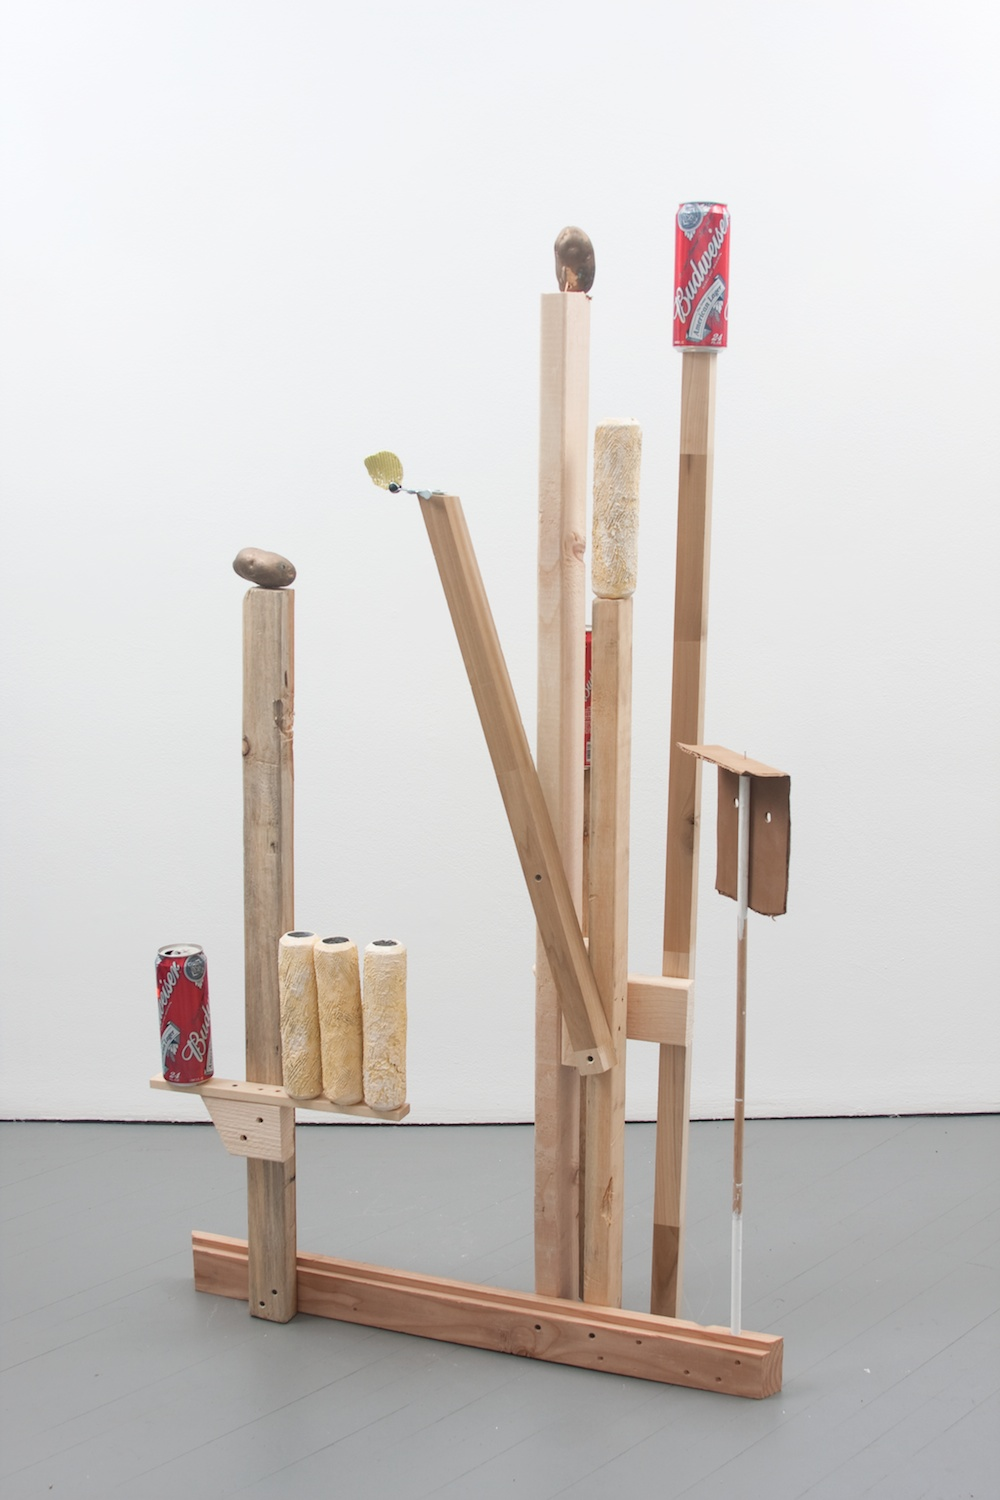 Chris Bradley  Target #1  2011 Aluminum, cast aluminum, cast bronze, paint, wood, beer cans, clamp 62 ½h x 35w x 13d in CB001